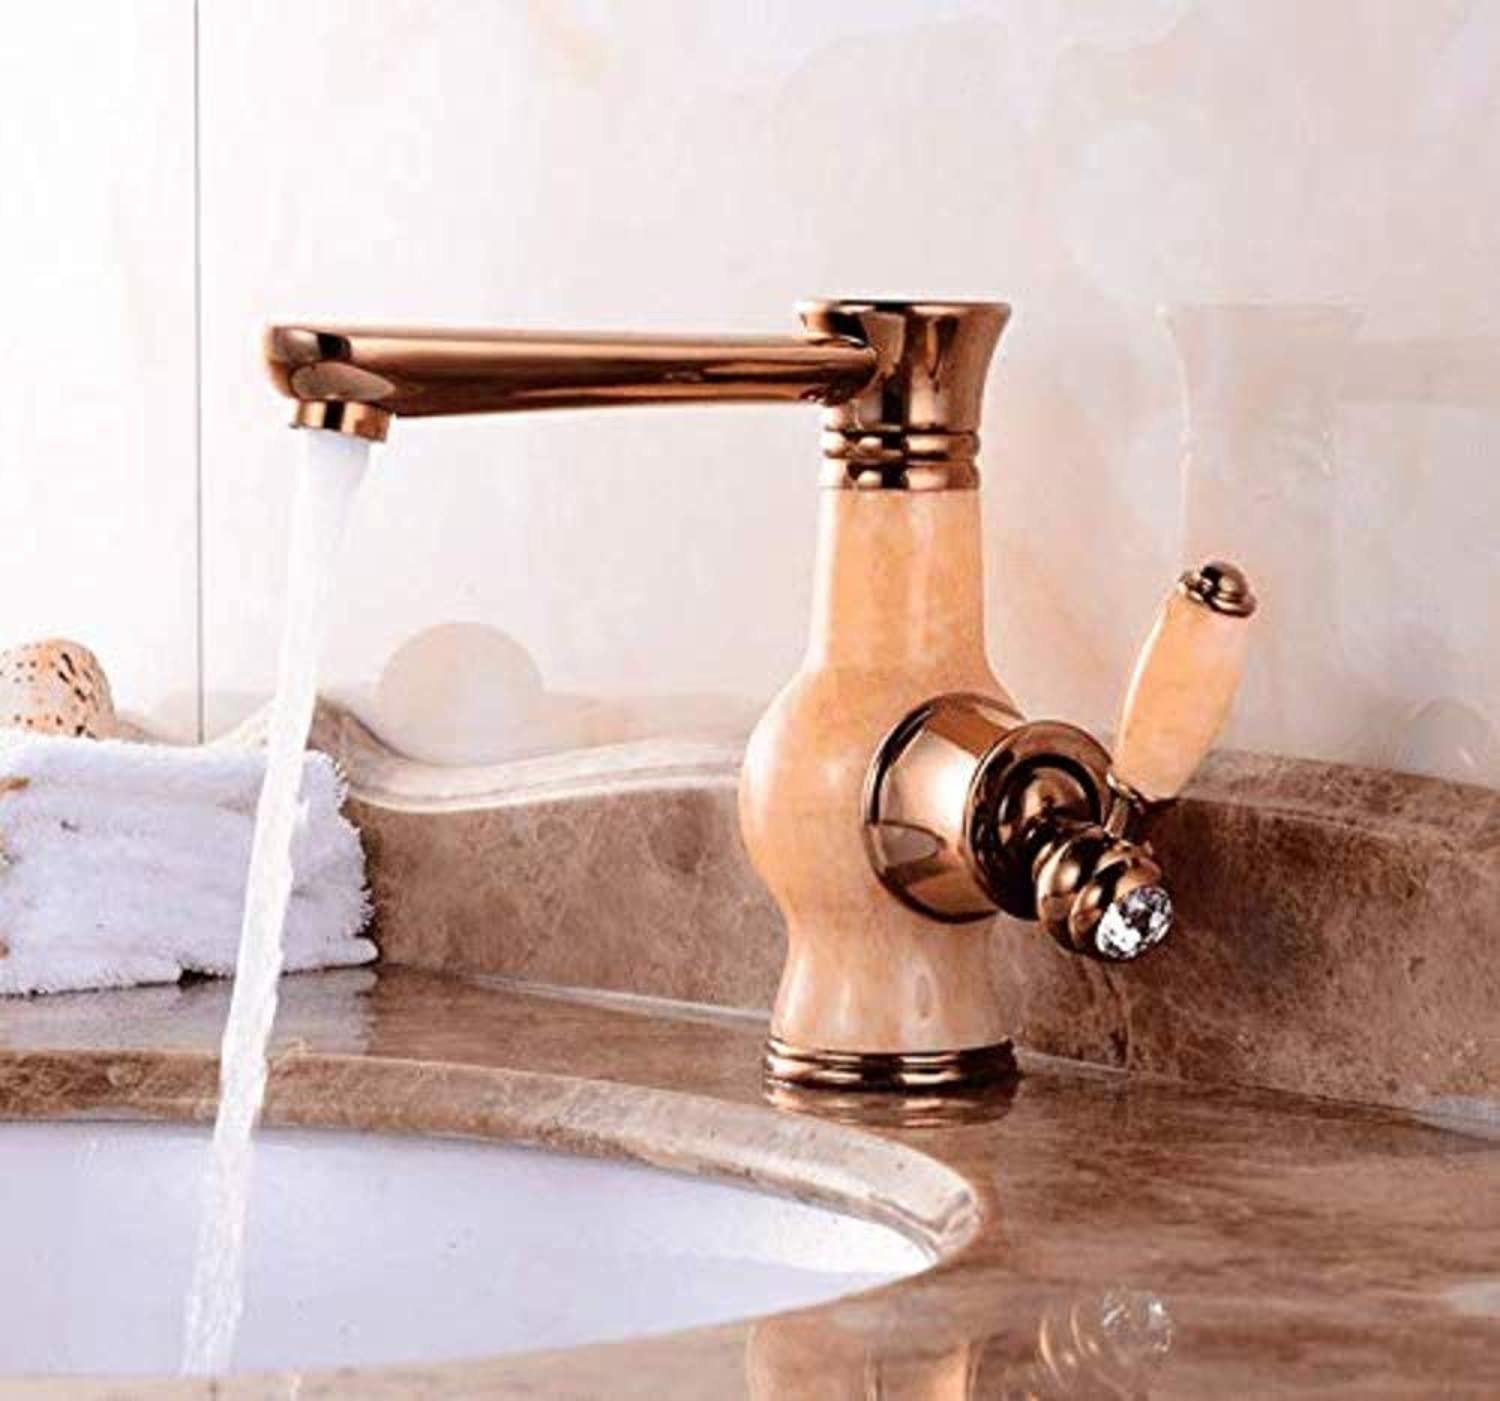 Faucetretro Deluxe Faucetinging Faucet European Style Jade Faucet, golden Basin, Hot and Cold Faucet, Washbasin, Retro Swivel Faucet, Single Hole Faucet.